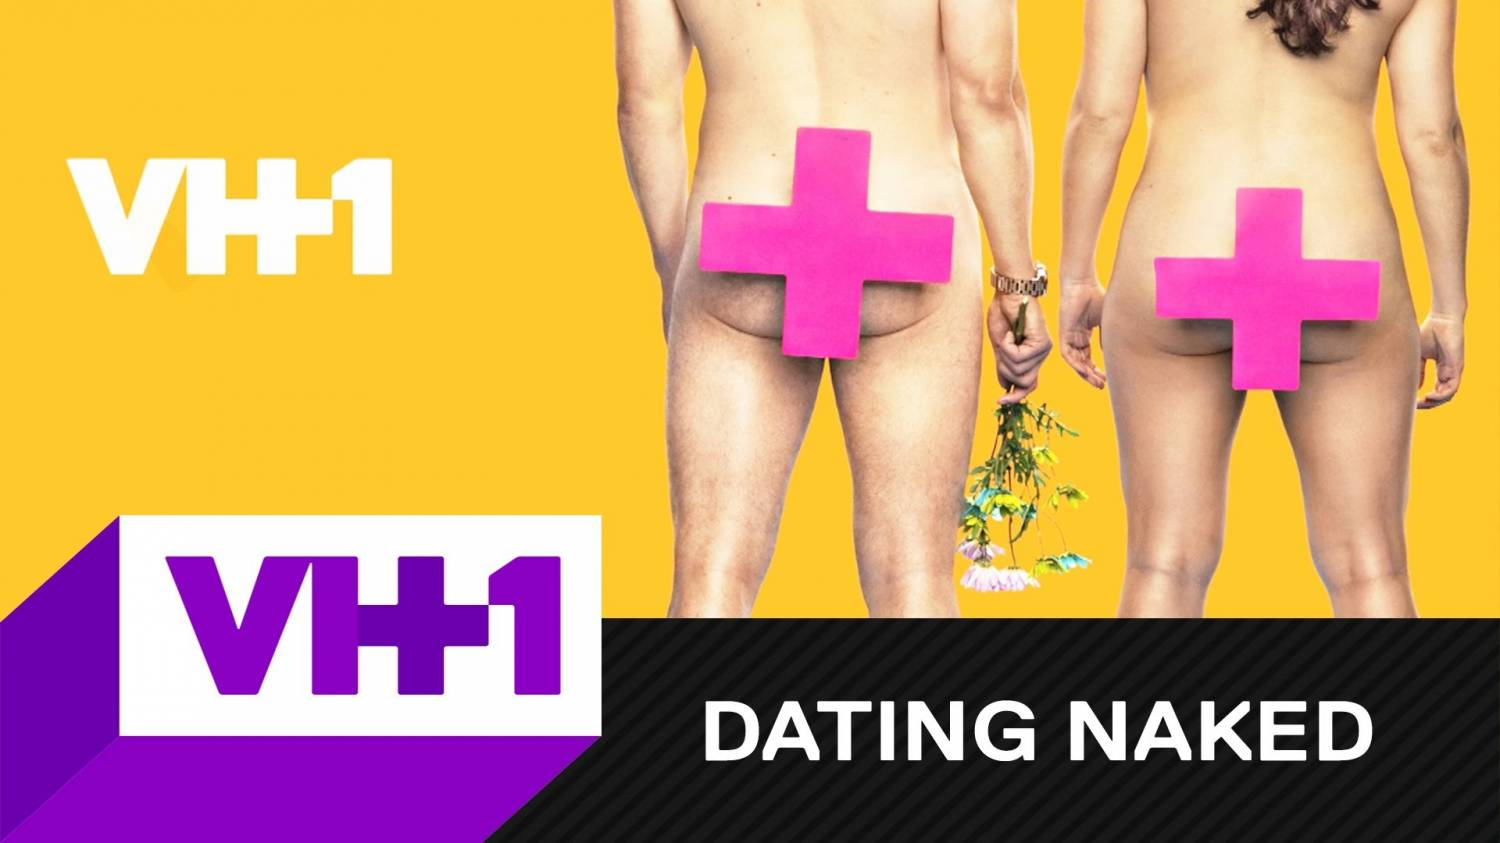 Музыка и видеоролик из рекламы VH1 - Dating Naked